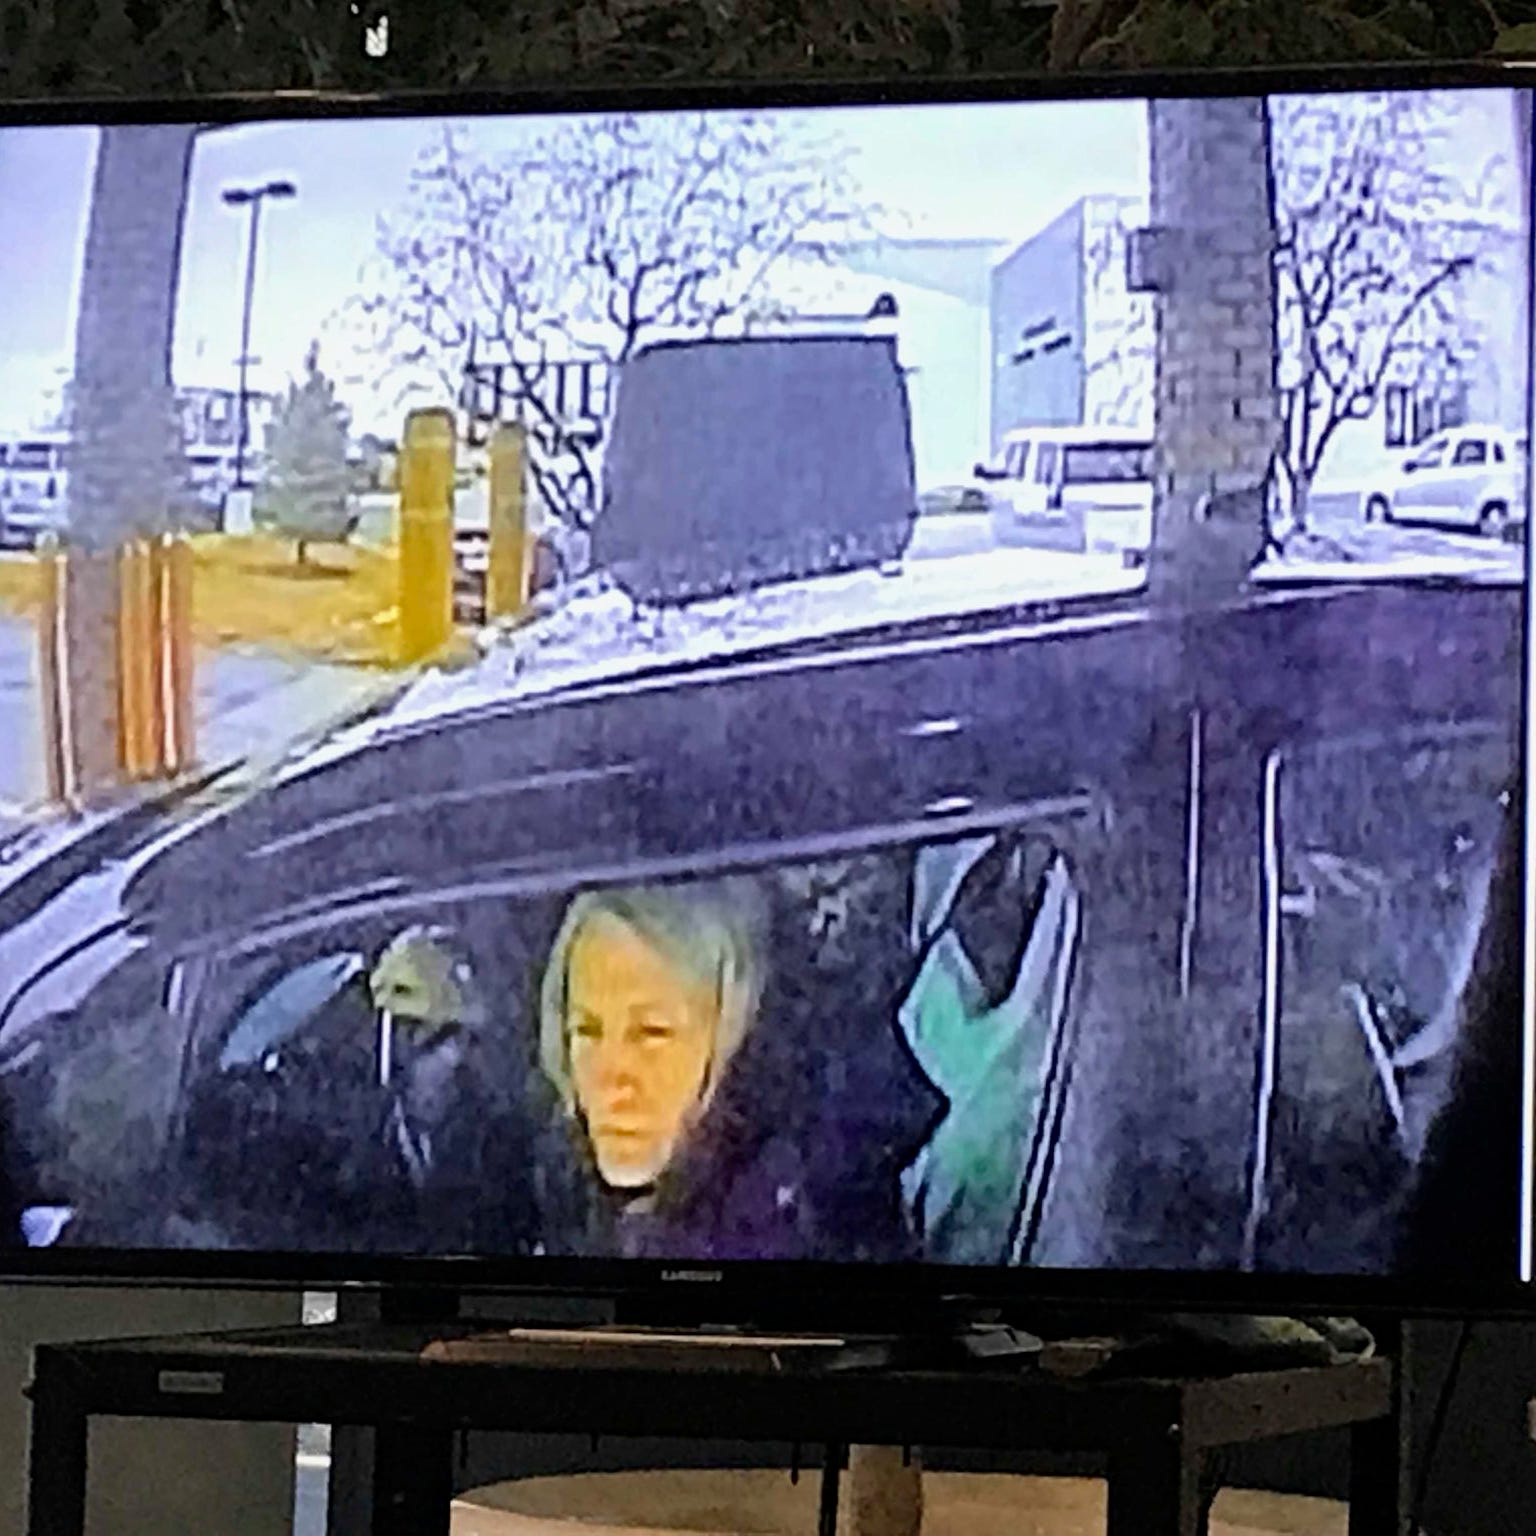 Prosecutor: Karen Spranger caught on video stealing money from elderly woman